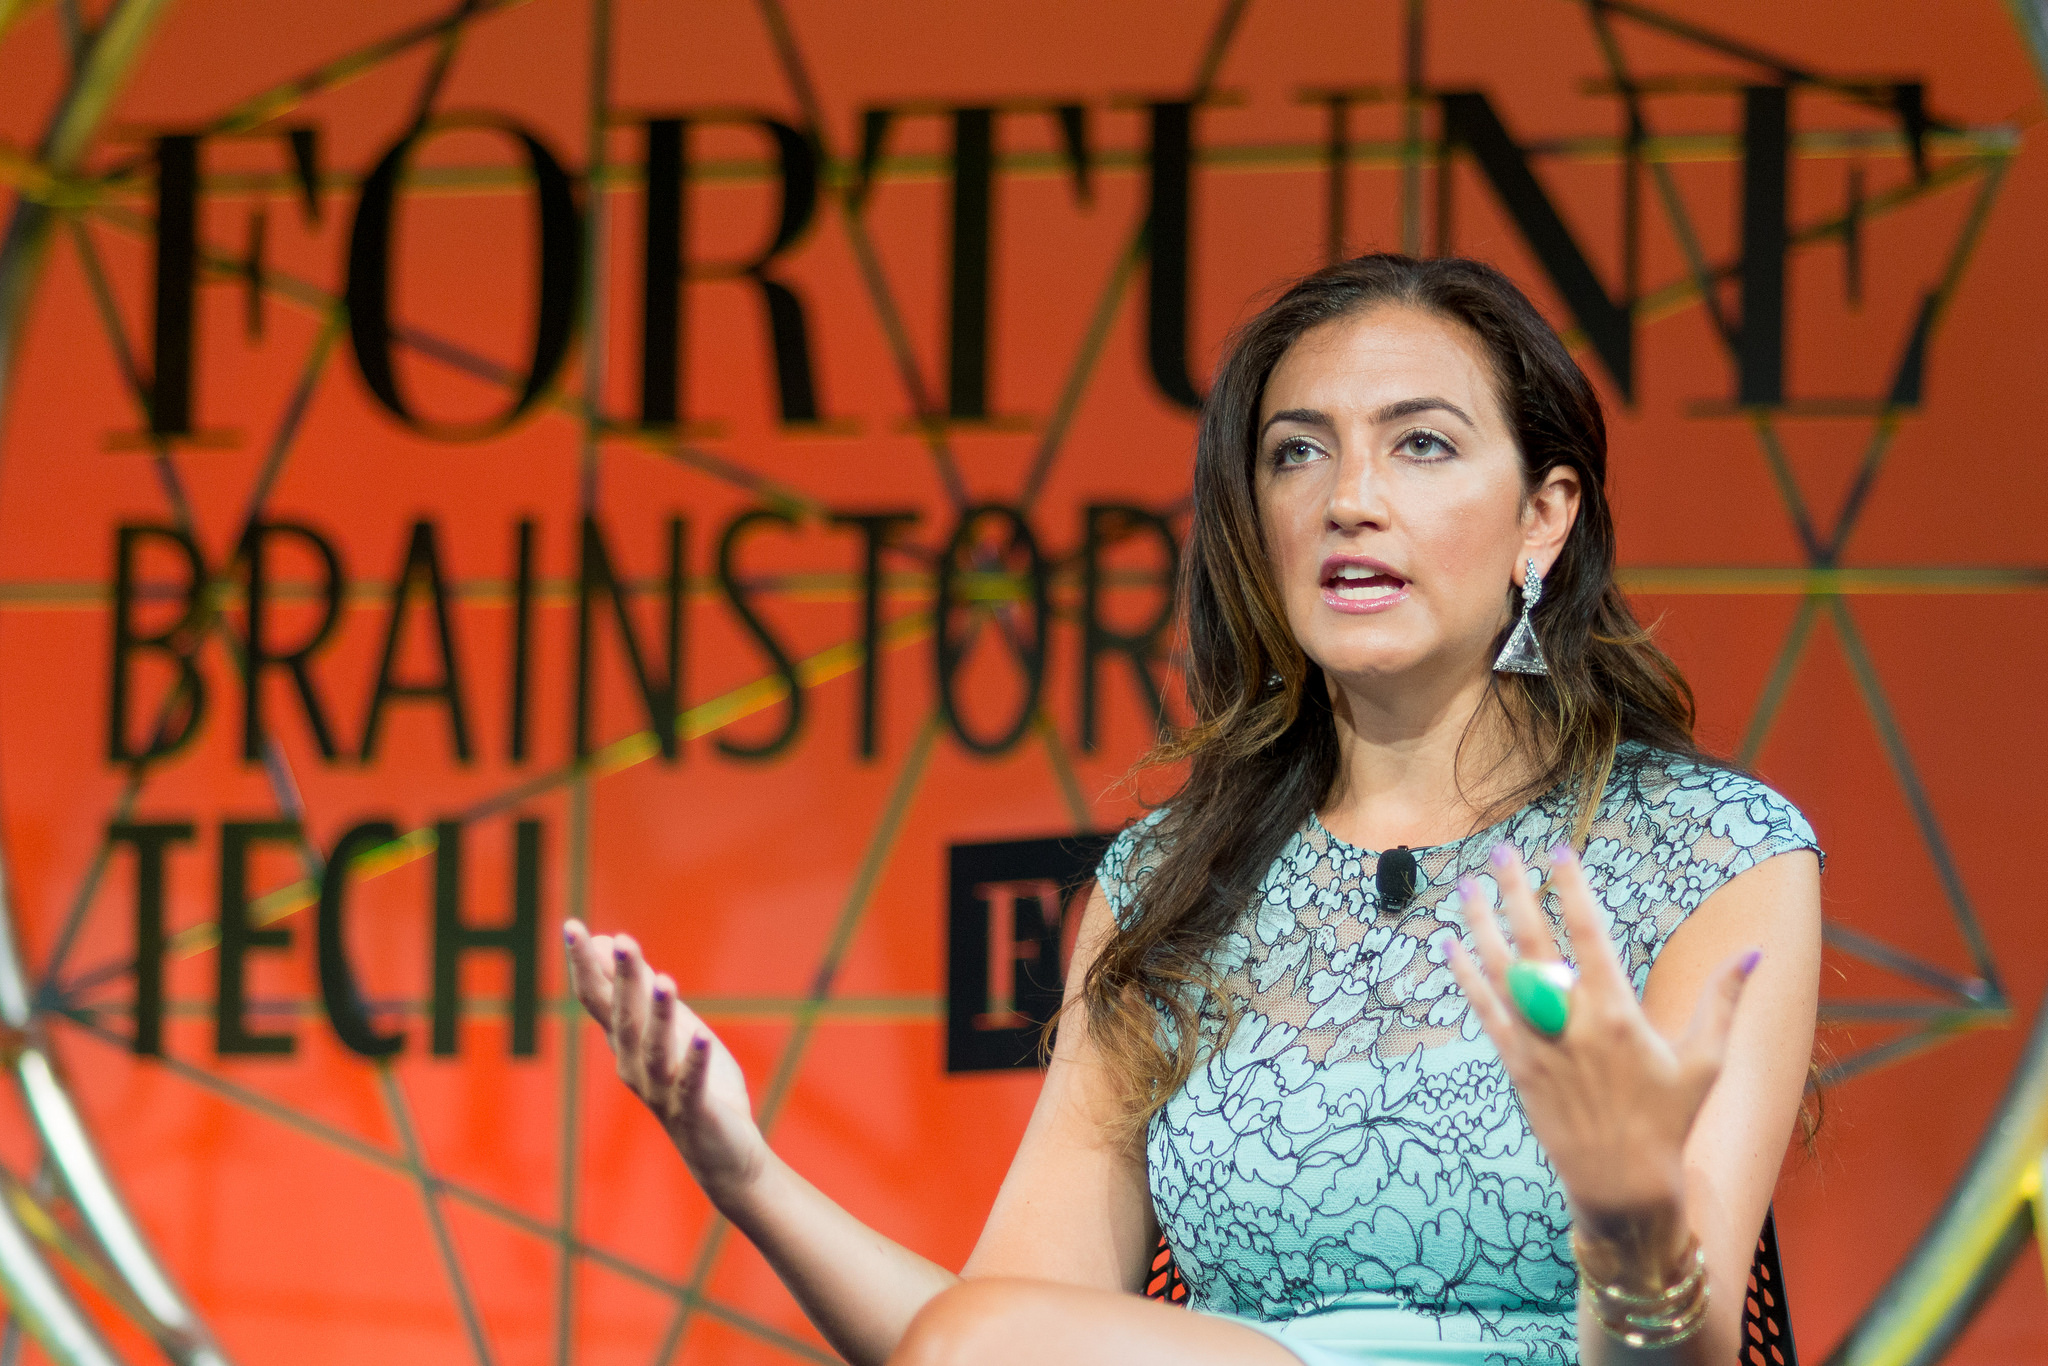 Rent the Runway CEO Jennifer Hyman at the 2014 Fortune Brainstorm Tech conference in Aspen, Colo.